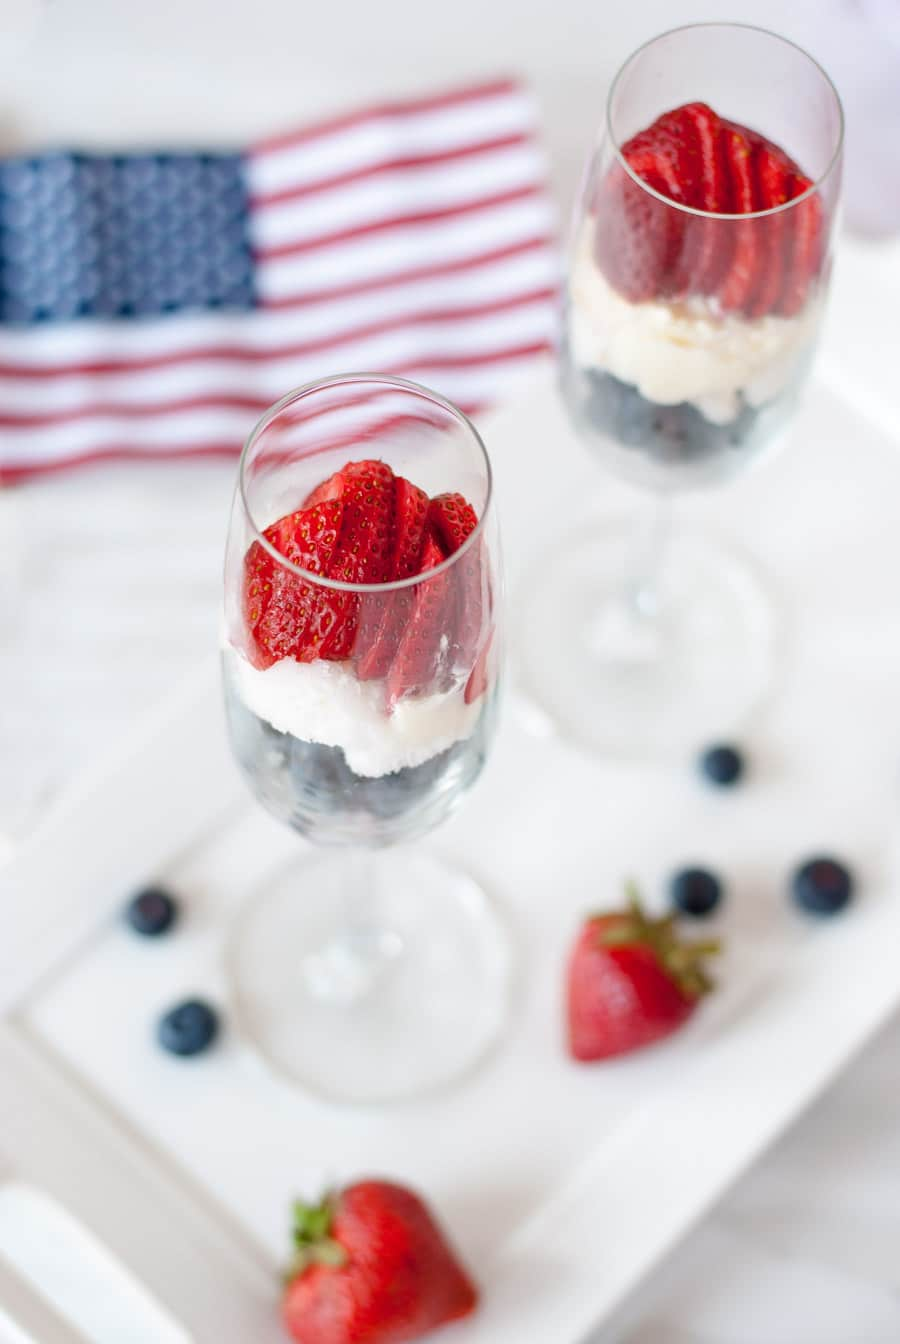 Patriotic Dessert Parfait with Summer Berries & Lemon Zest Whipped Cream